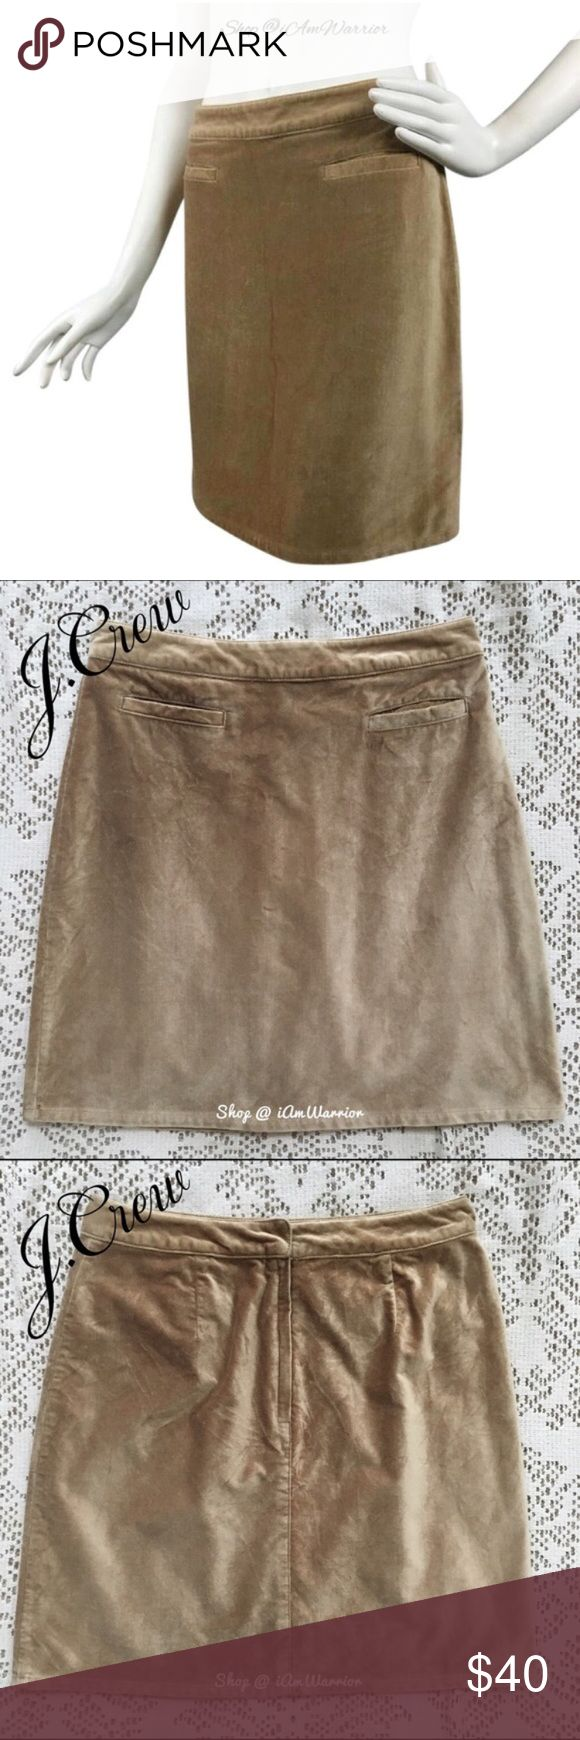 "🆕NWT J. Crew velvet mini skirt NWT J. Crew velvet mini skirt. Color is called almond, and depending on the light it looks tan to warm caramel in color. Sits at natural waist (just shy of 14"" across), so even though a size 8, it fits a size 6 better. 20"" long.❗Please read my recently updated 'about me and my closet' listing for pricing/policies. J. Crew Skirts Mini"